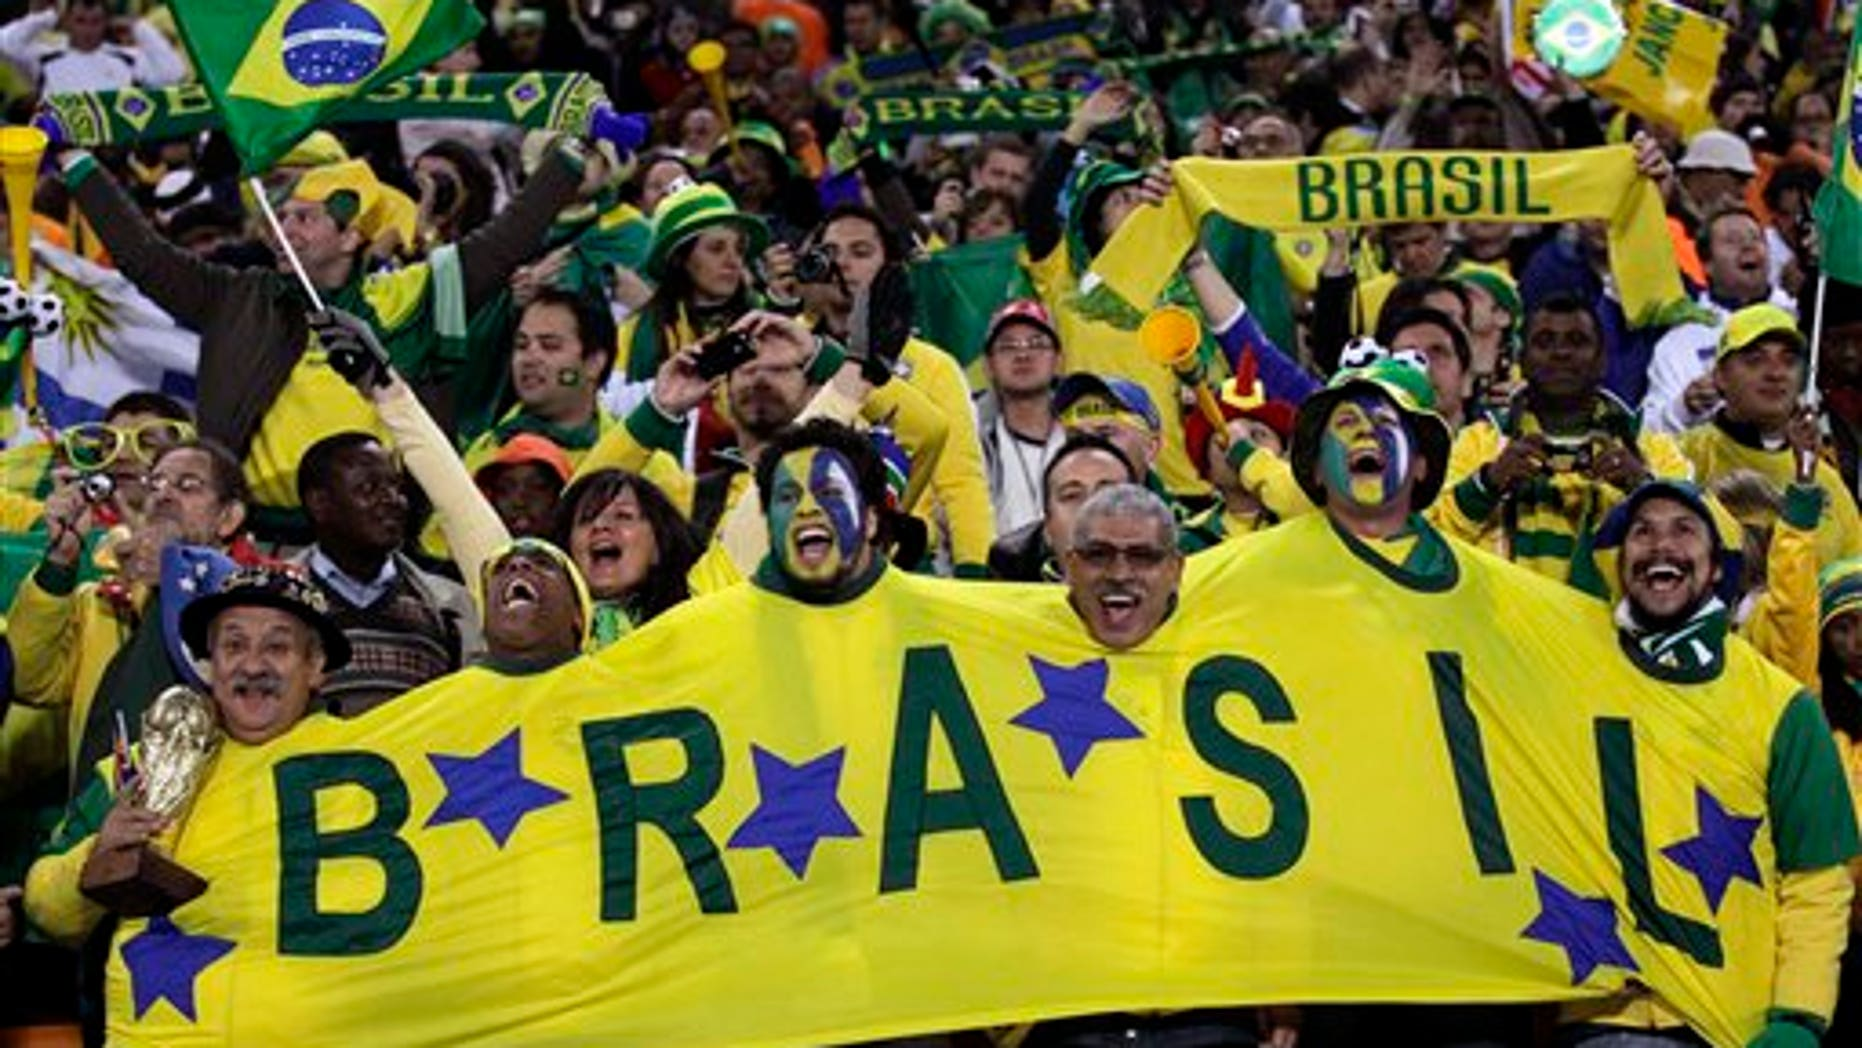 Brazil fans cheers prior to the World Cup group G soccer match between Brazil and Ivory Coast at Soccer City in Johannesburg, South Africa, Sunday, June 20, 2010.  (AP Photo/Frank Augstein)